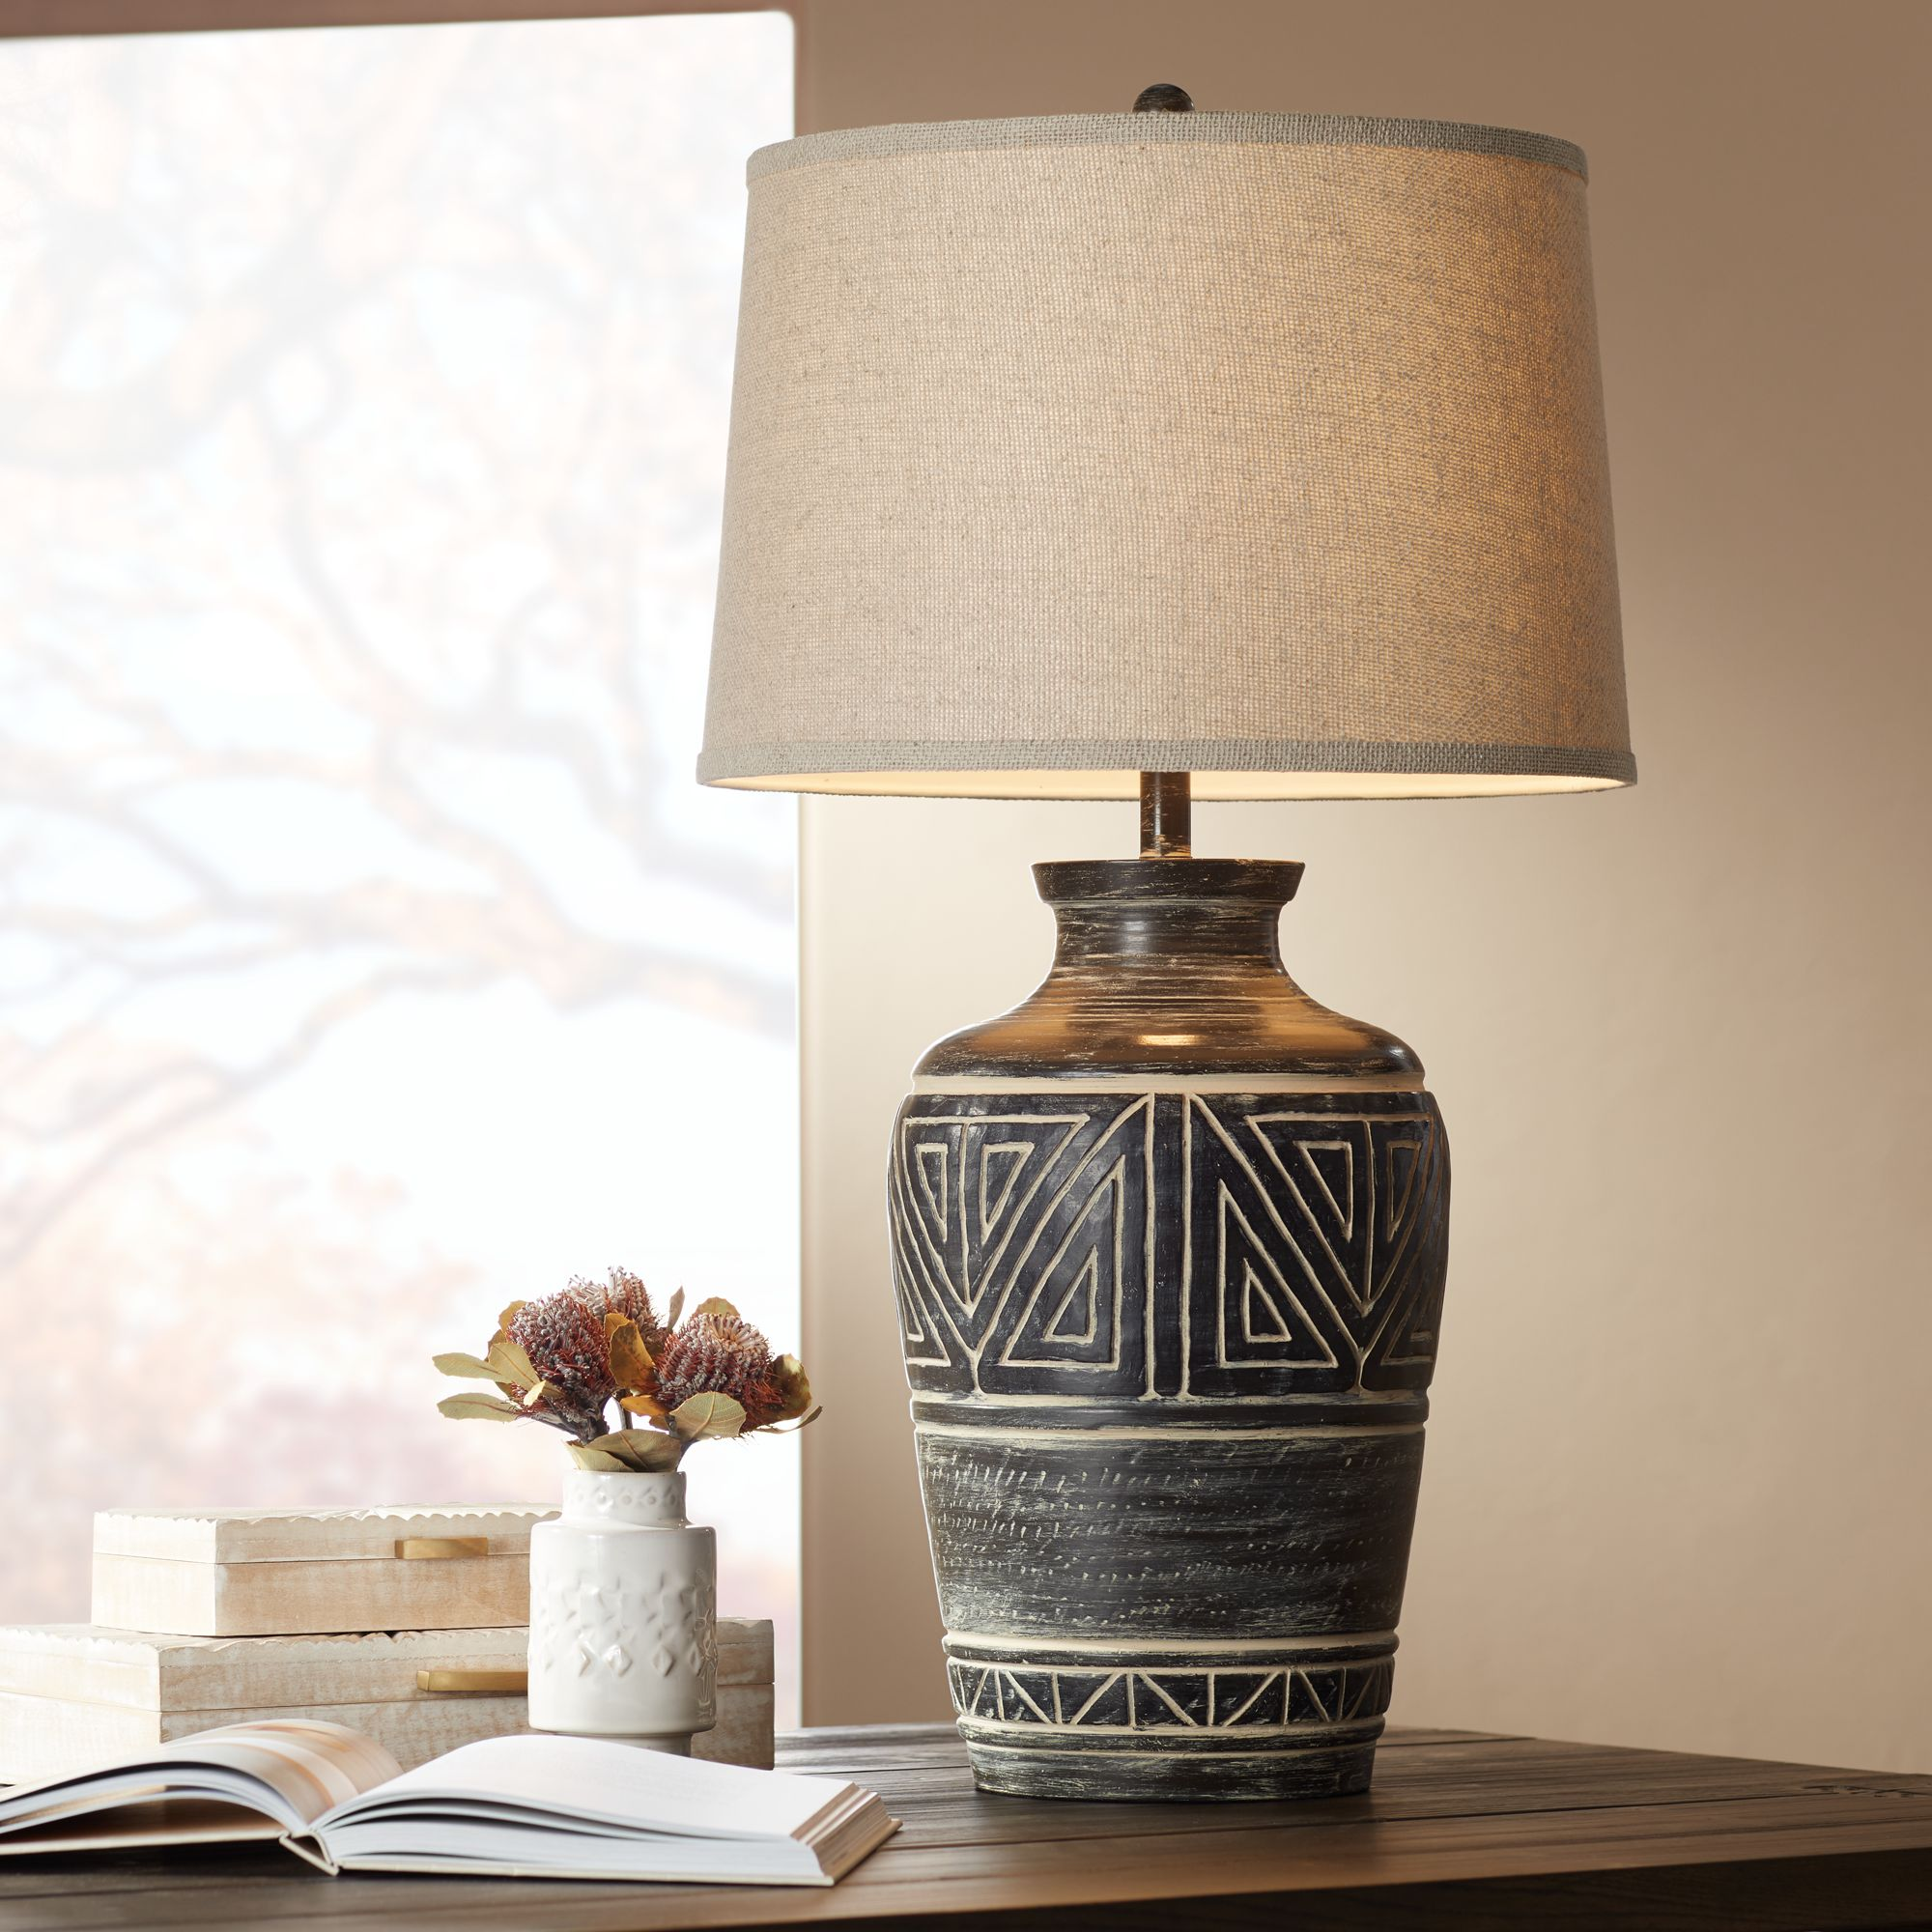 John Timberland Rustic Table Lamp Southwest Earth Tone Linen Drum Shade For Living Room Bedroom Bedside Nightstand Office Family Walmart Com Walmart Com